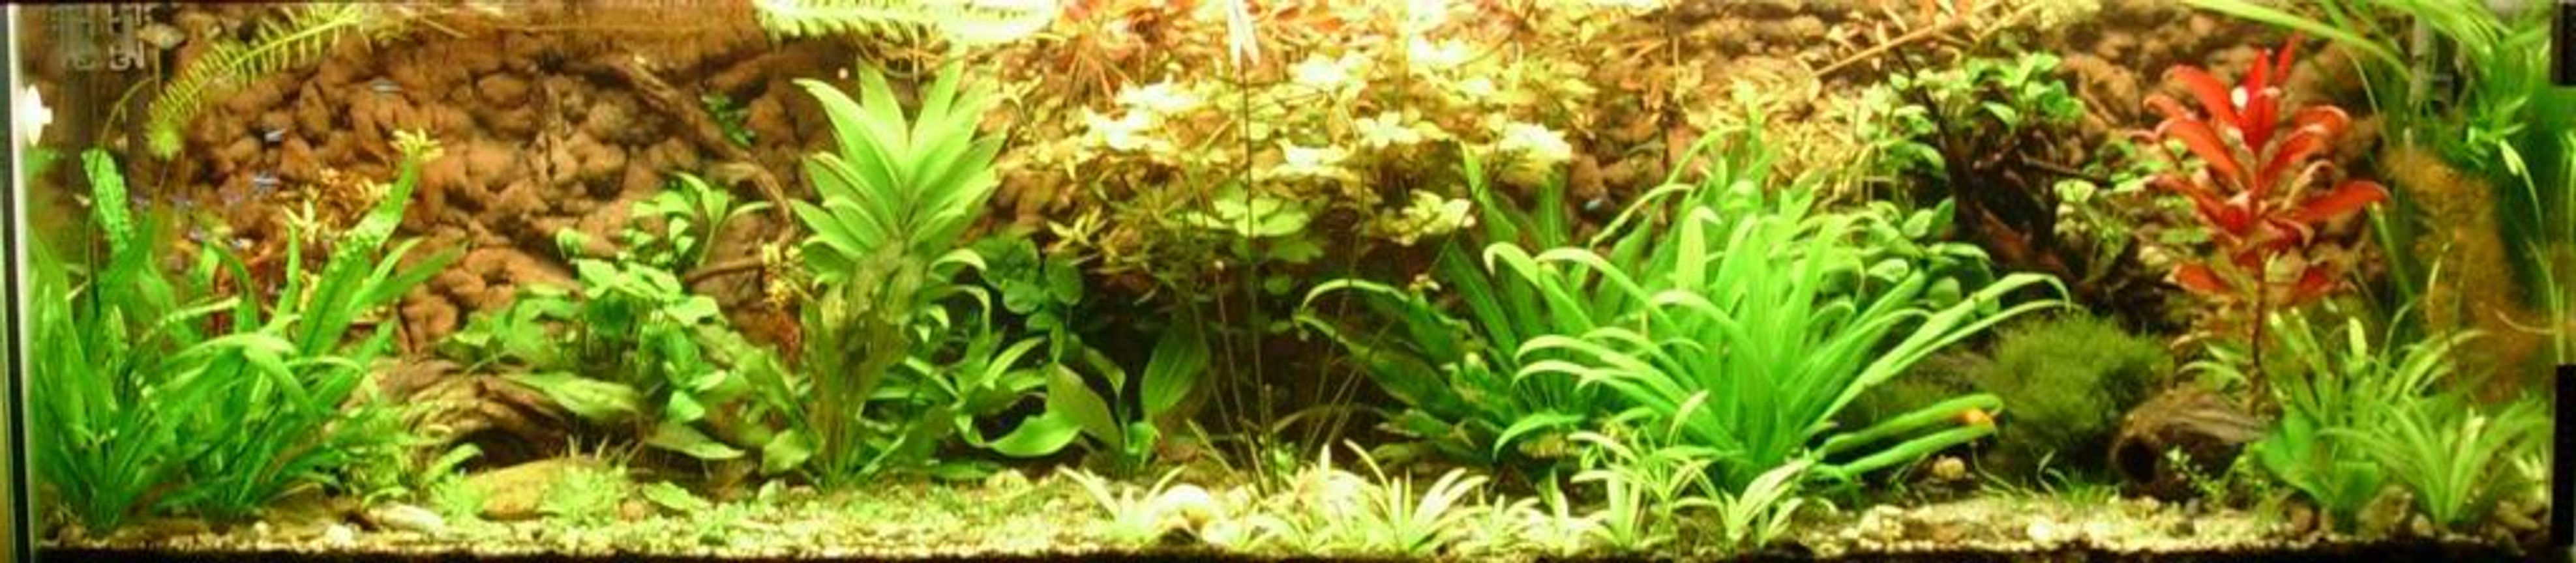 118 gallons planted tank (mostly live plants and fish) - My tank after 4 moths.